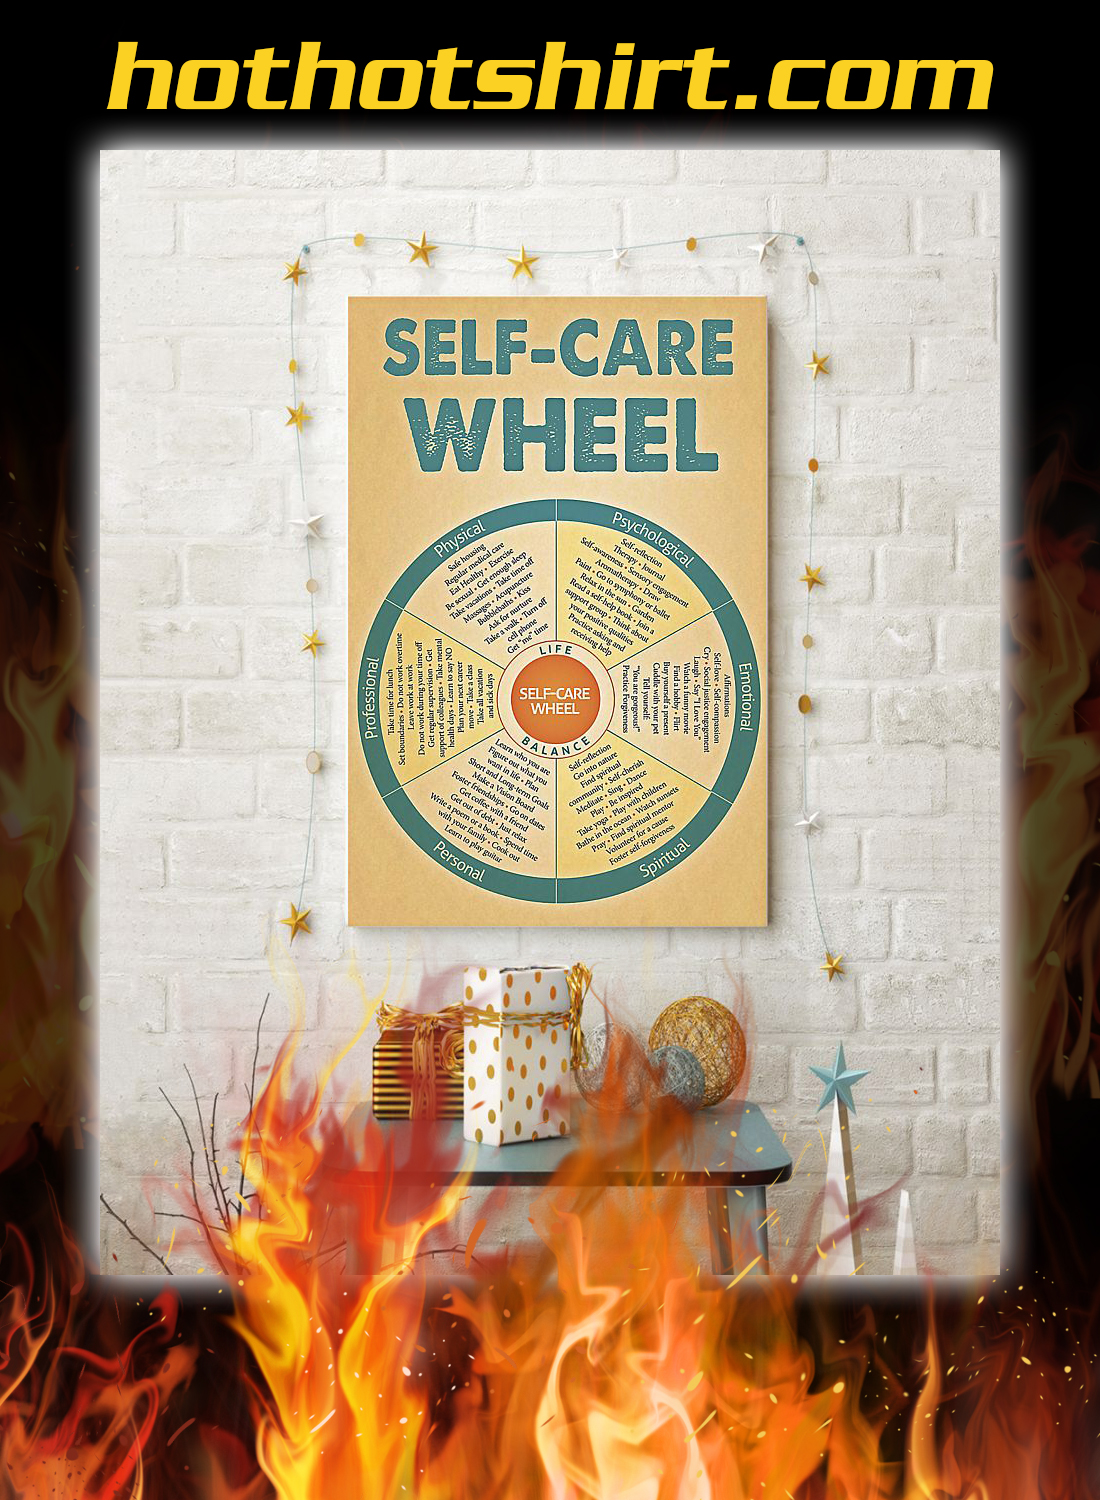 Social worker self care wheel poster 3